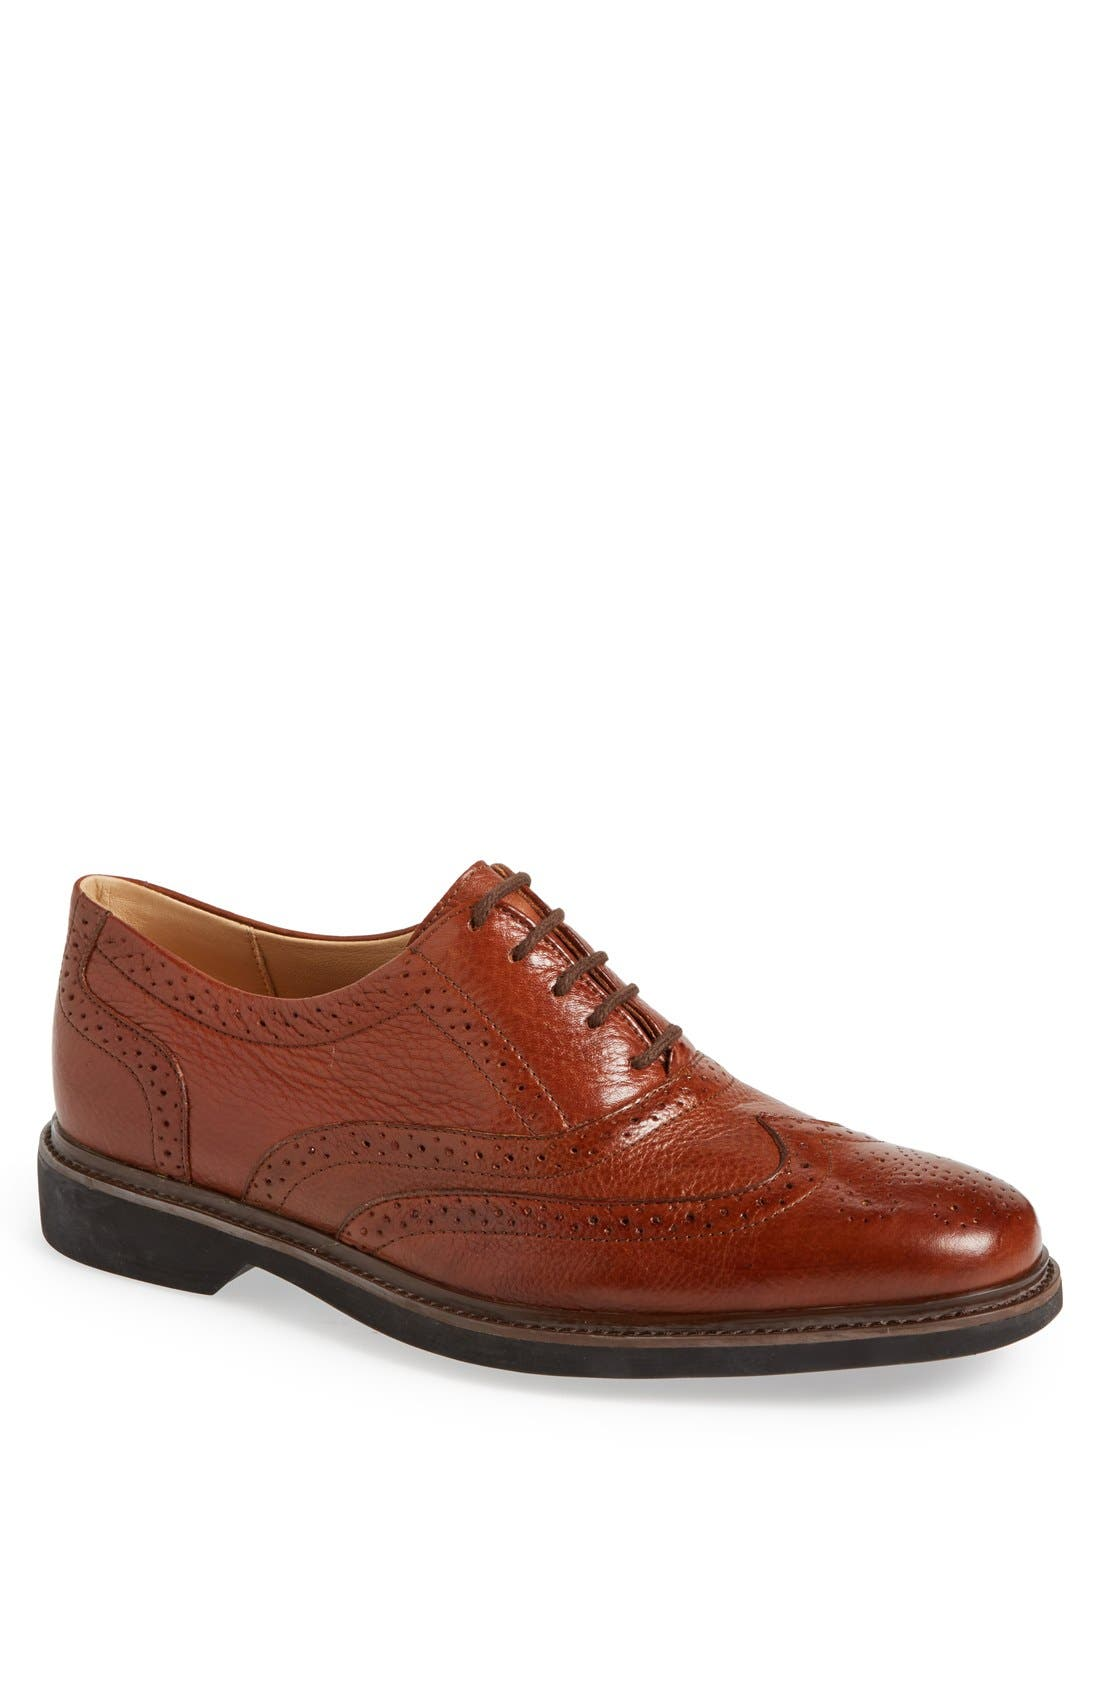 Main Image - Anatomic & Co 'Gabriel' Wingtip (Men)